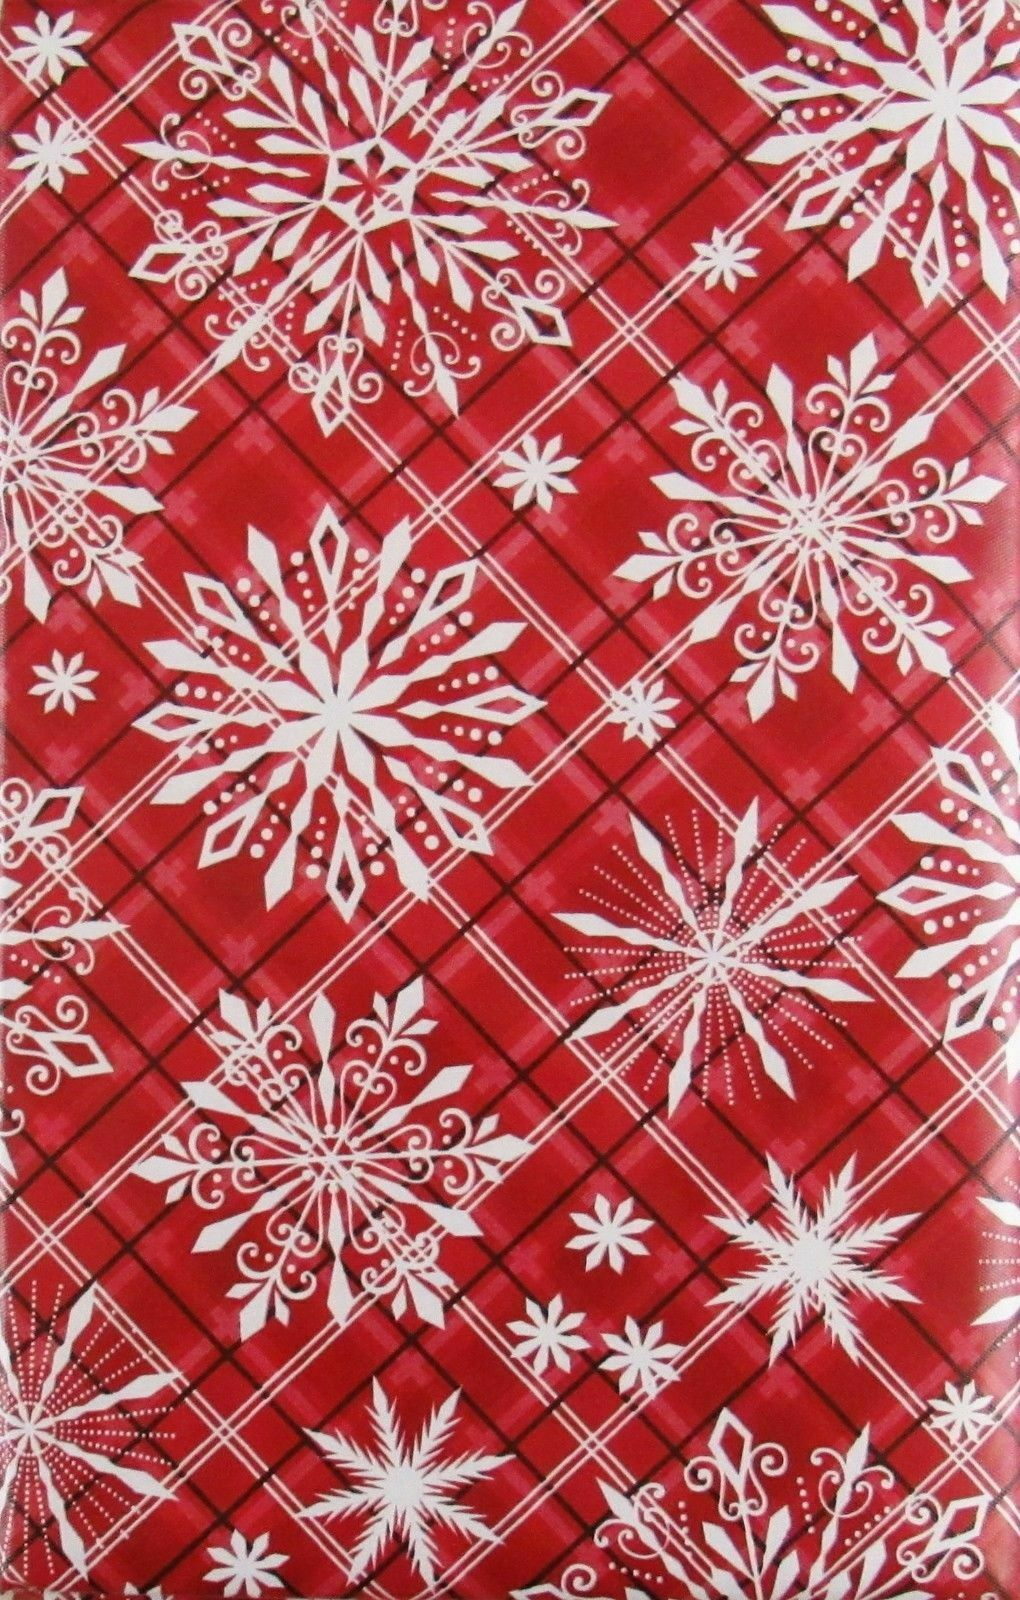 Christmas Snowflakes on Plaid Vinyl Flannel Back Tablecloth 52 x 70 Oblong